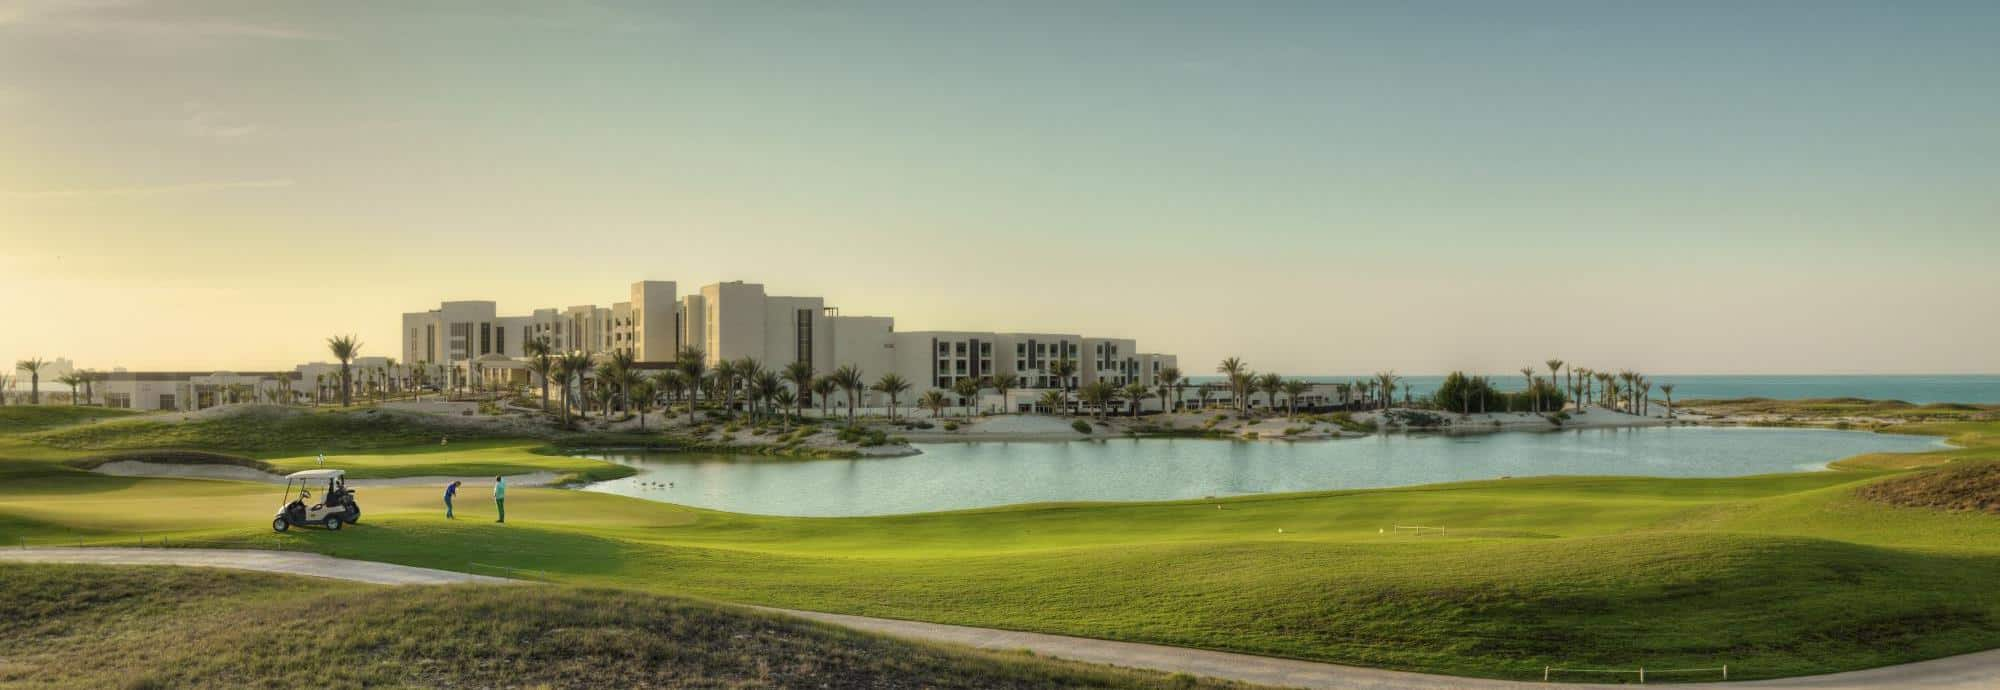 Park Hyatt Abu Dhabi Saadiyat Beach Golf Course